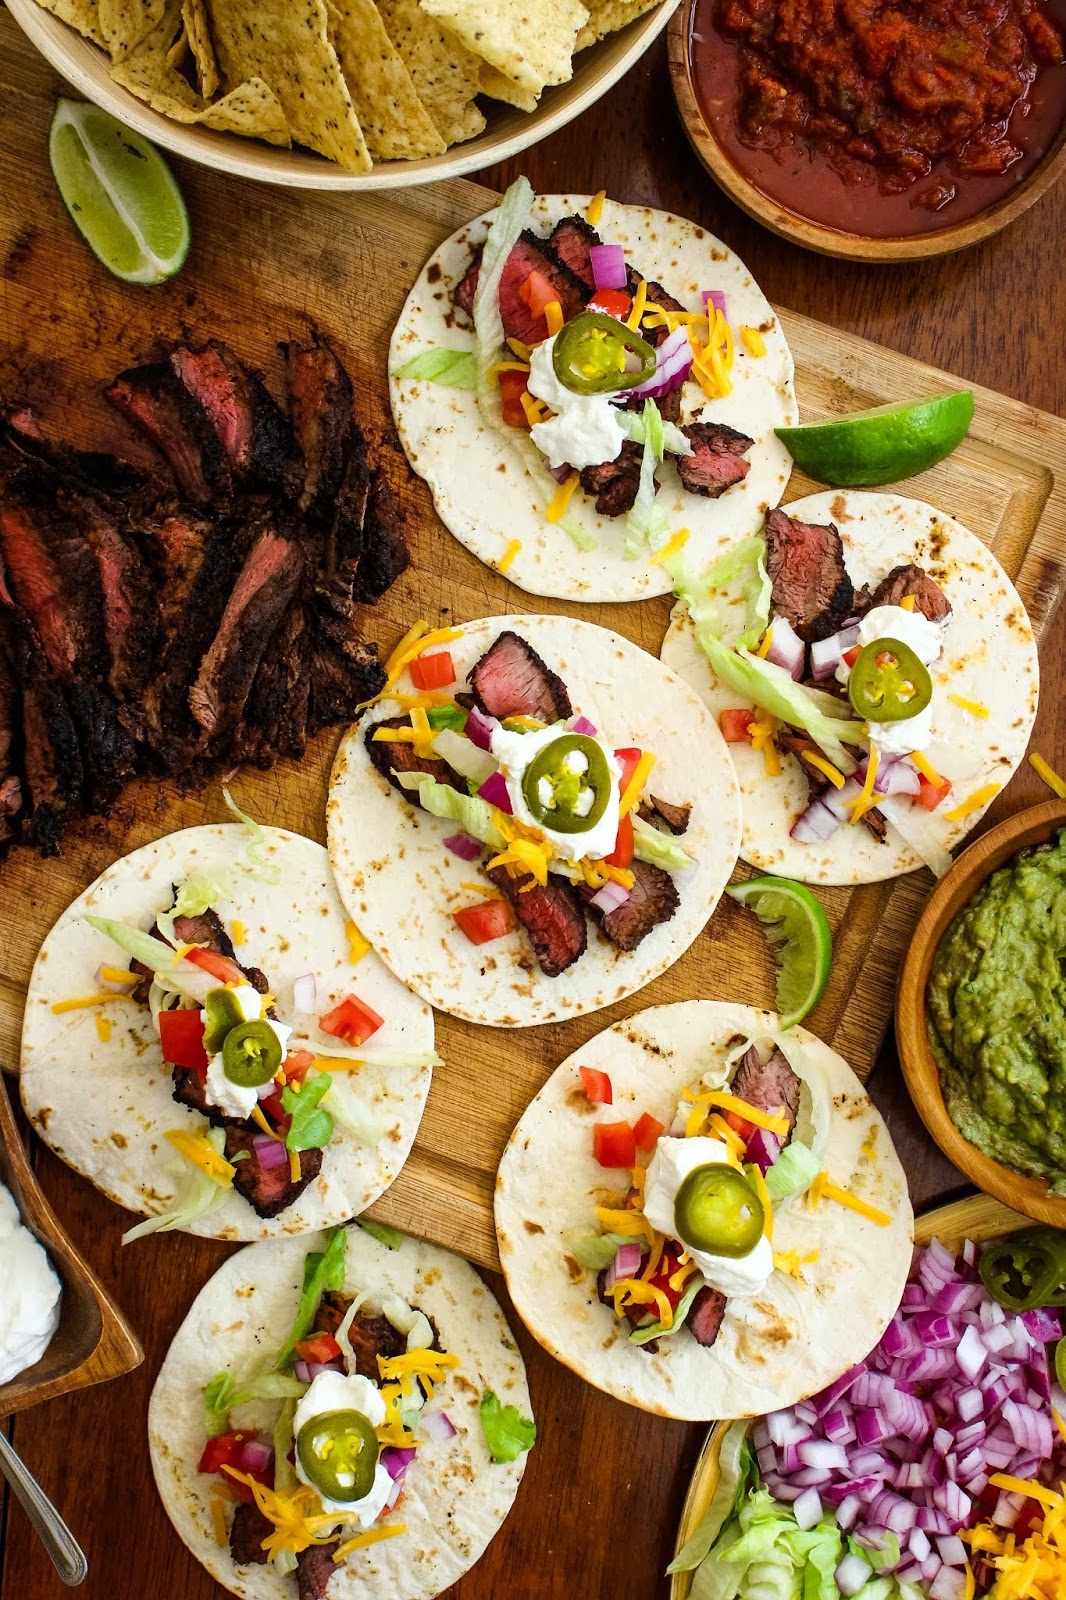 Grilled Sirloin Steak Tacos feature dry-rubbed grilled sirloin steak topped with all of your favorite taco toppings. You will want to make them all summer long! #tacos #steaktacos #grillingrecipe